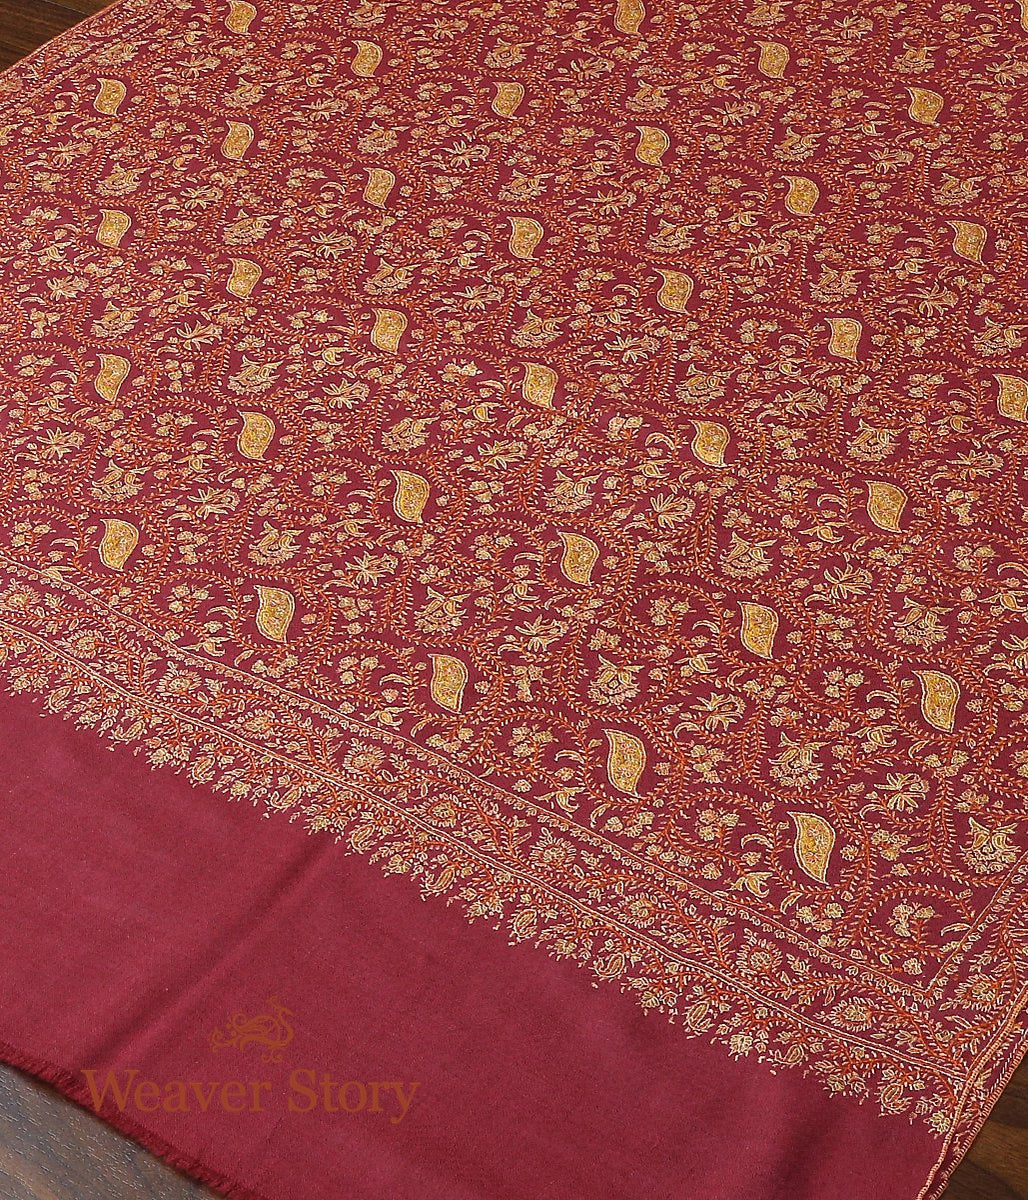 Berry Pink Hand Spun and Hand Woven Pure Pashmina Shawl with Sozni Embroidery